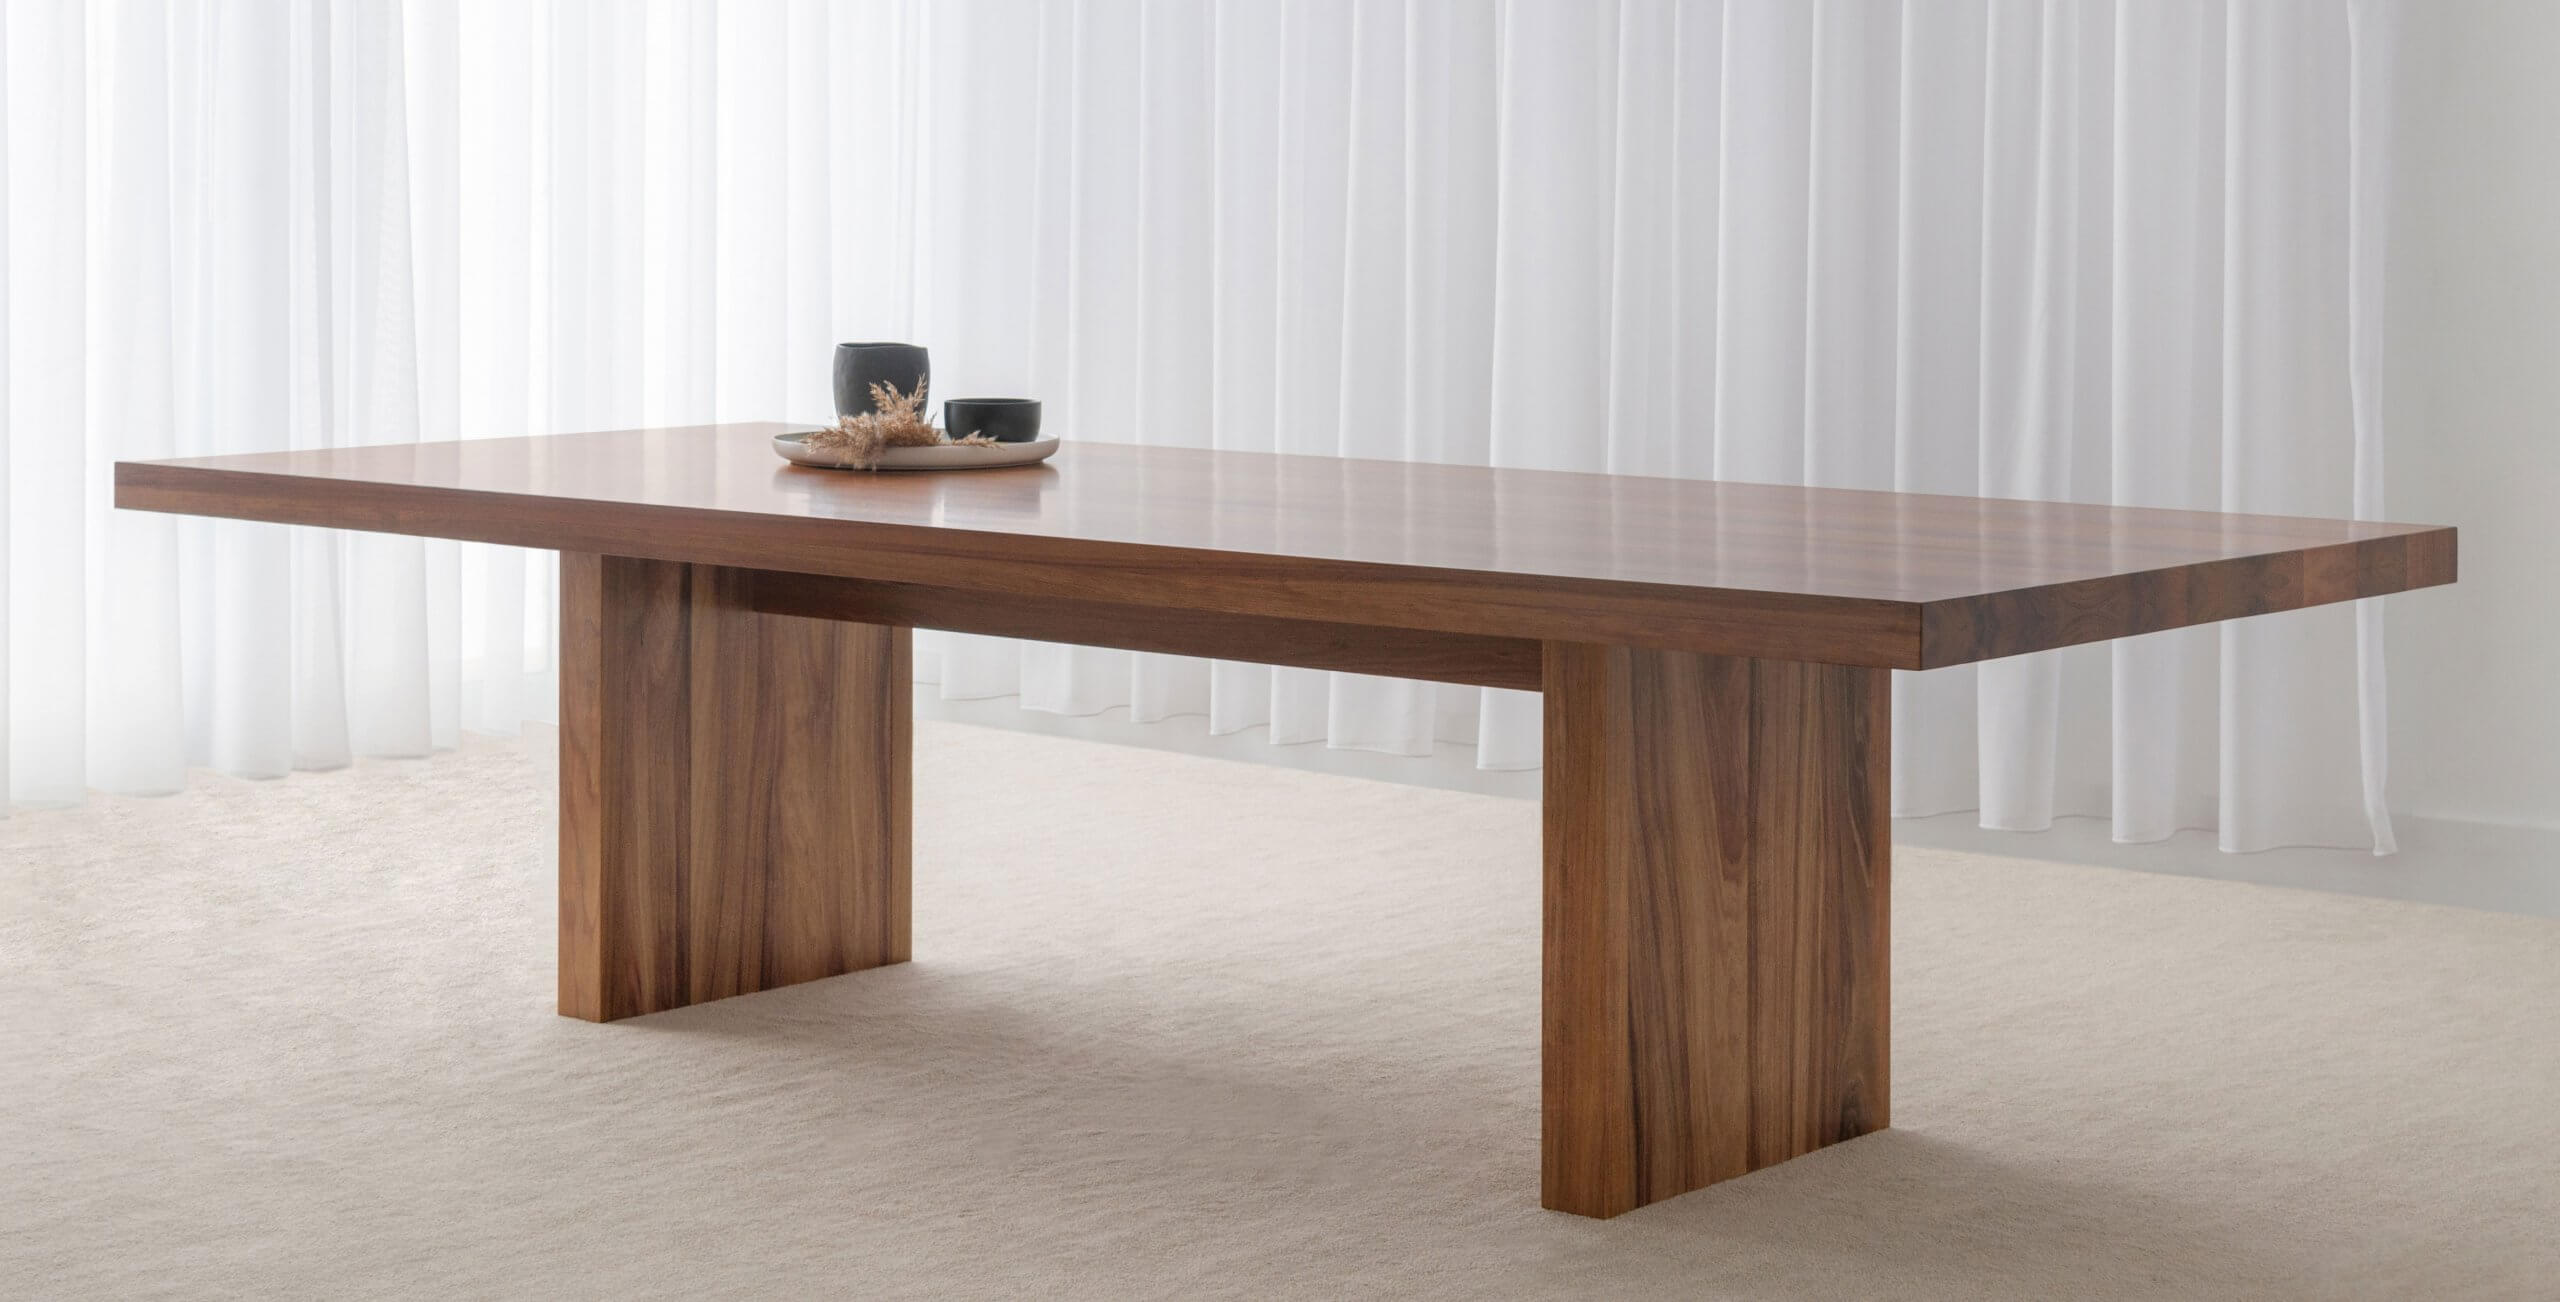 large rectangular dining table made from solid blackwood timber